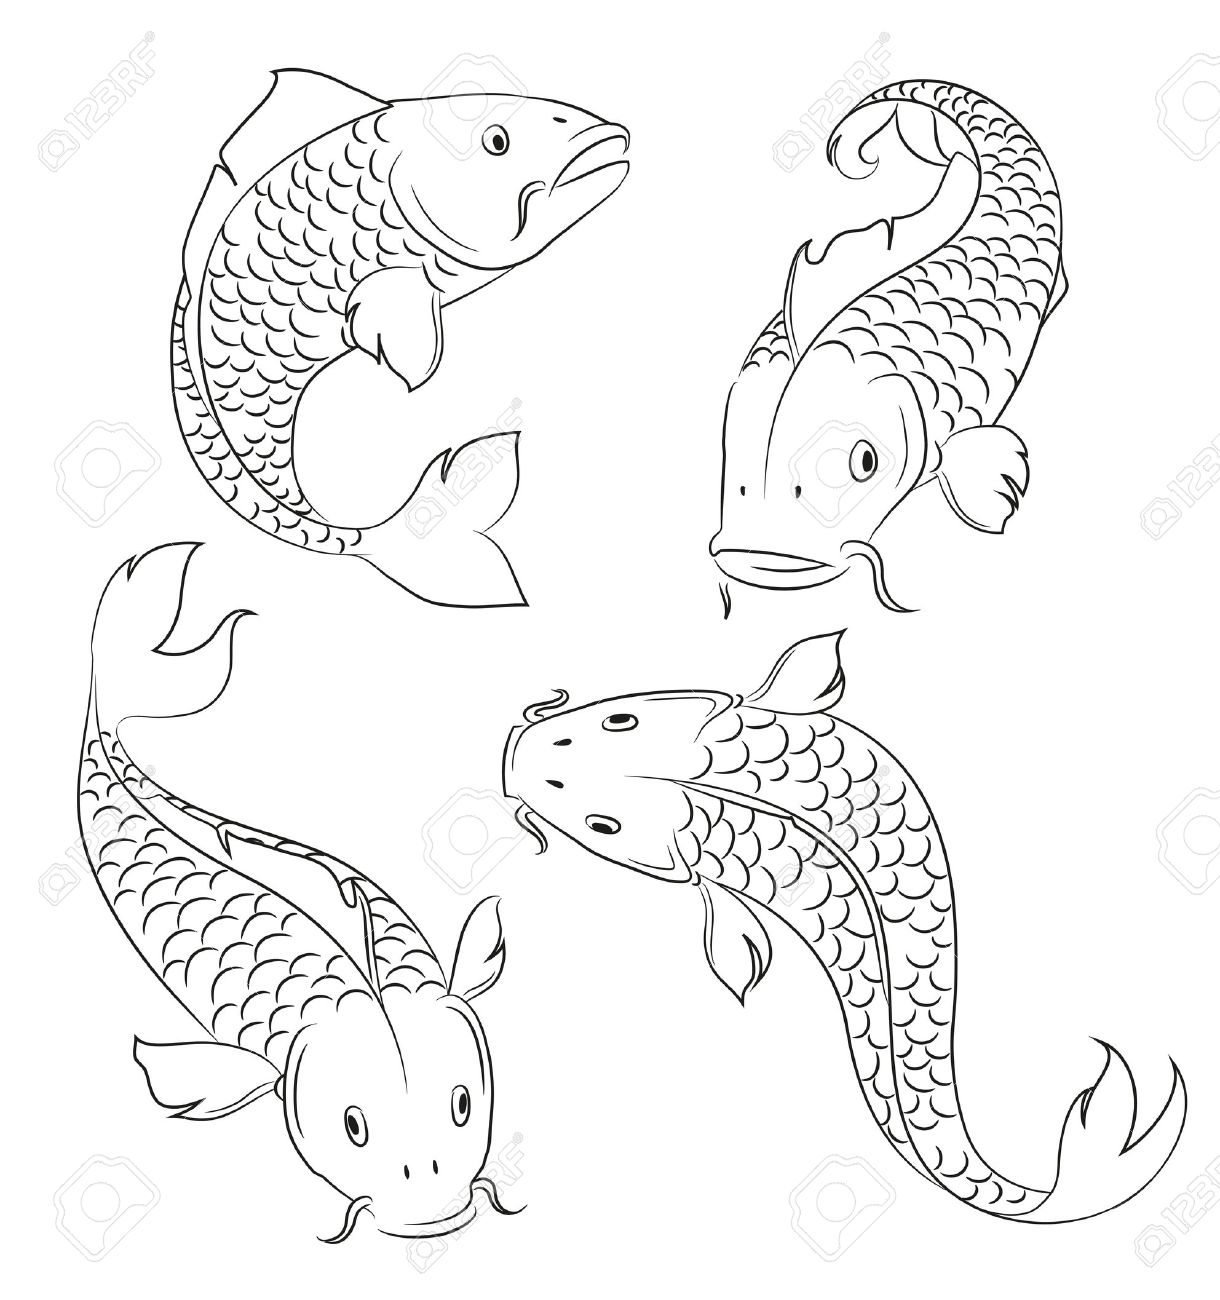 Carps sketches on a white background Stock Vector - 22498495